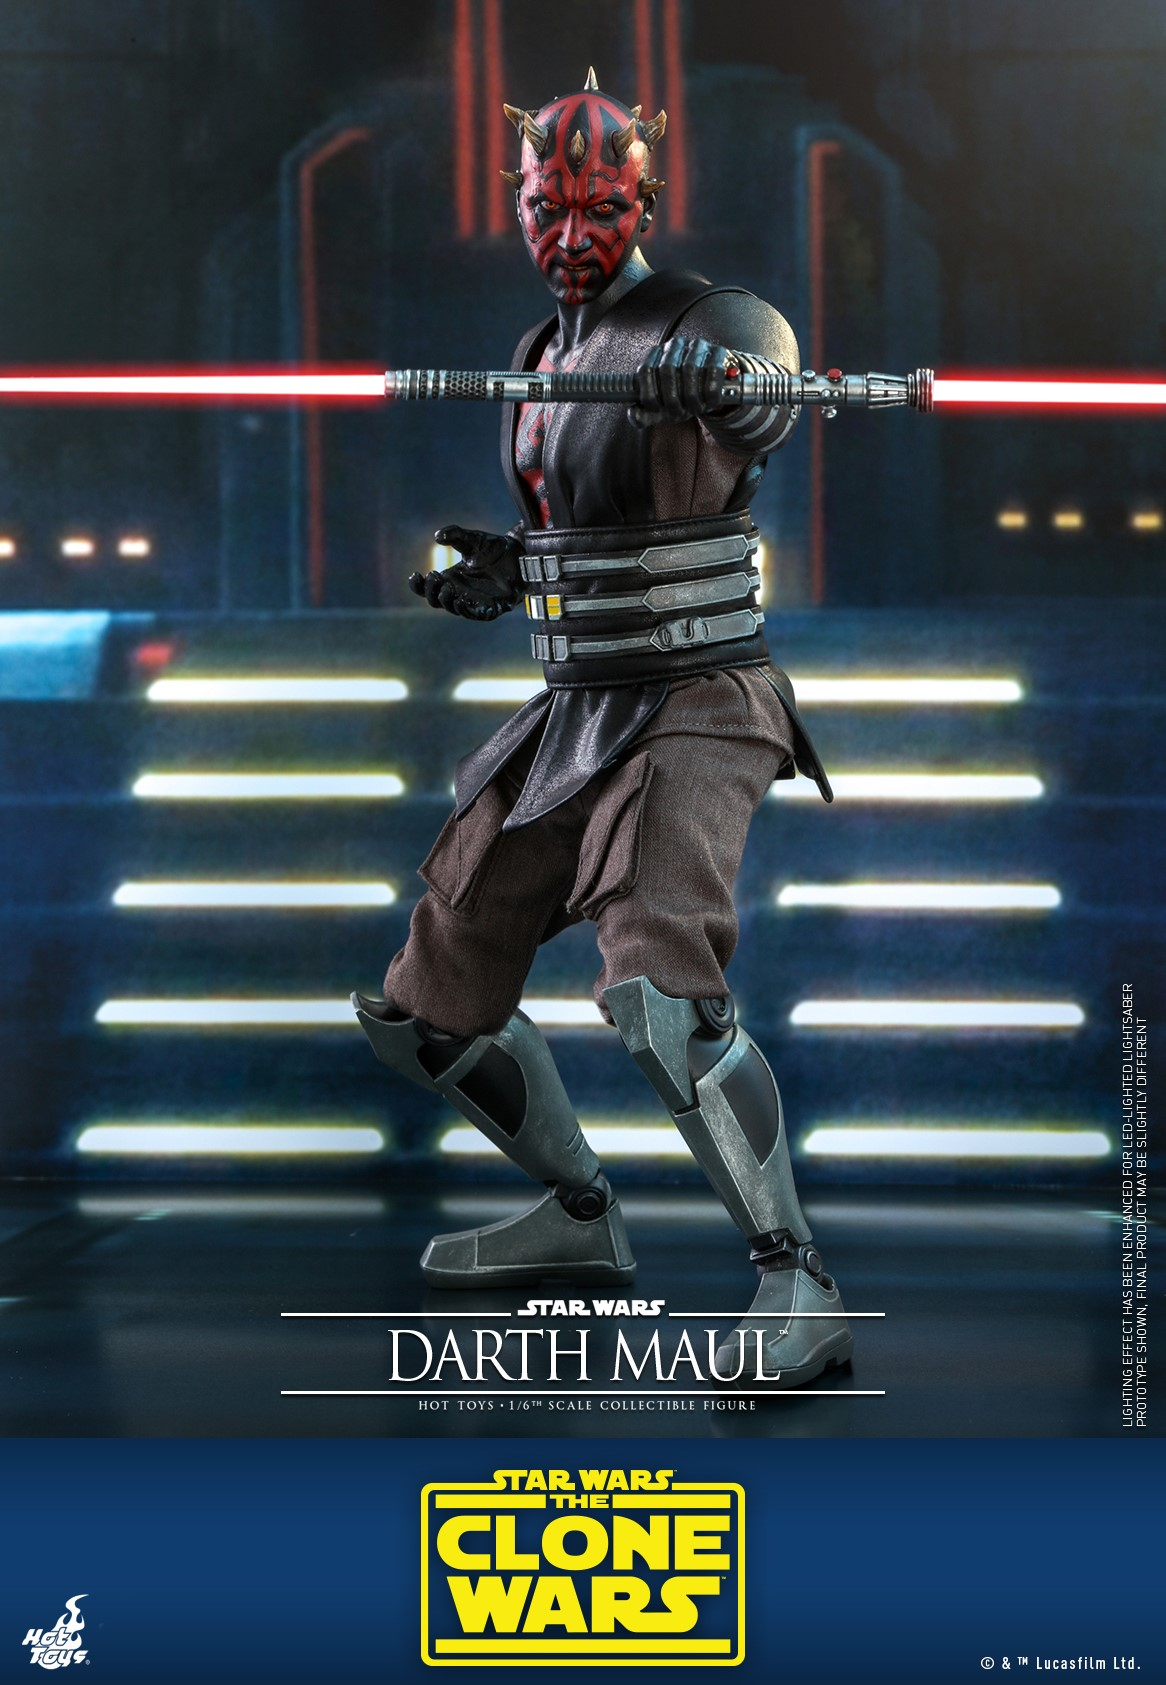 Pre-Order Hot Toys Star Wars Darth Maul Sixth Scale Figure